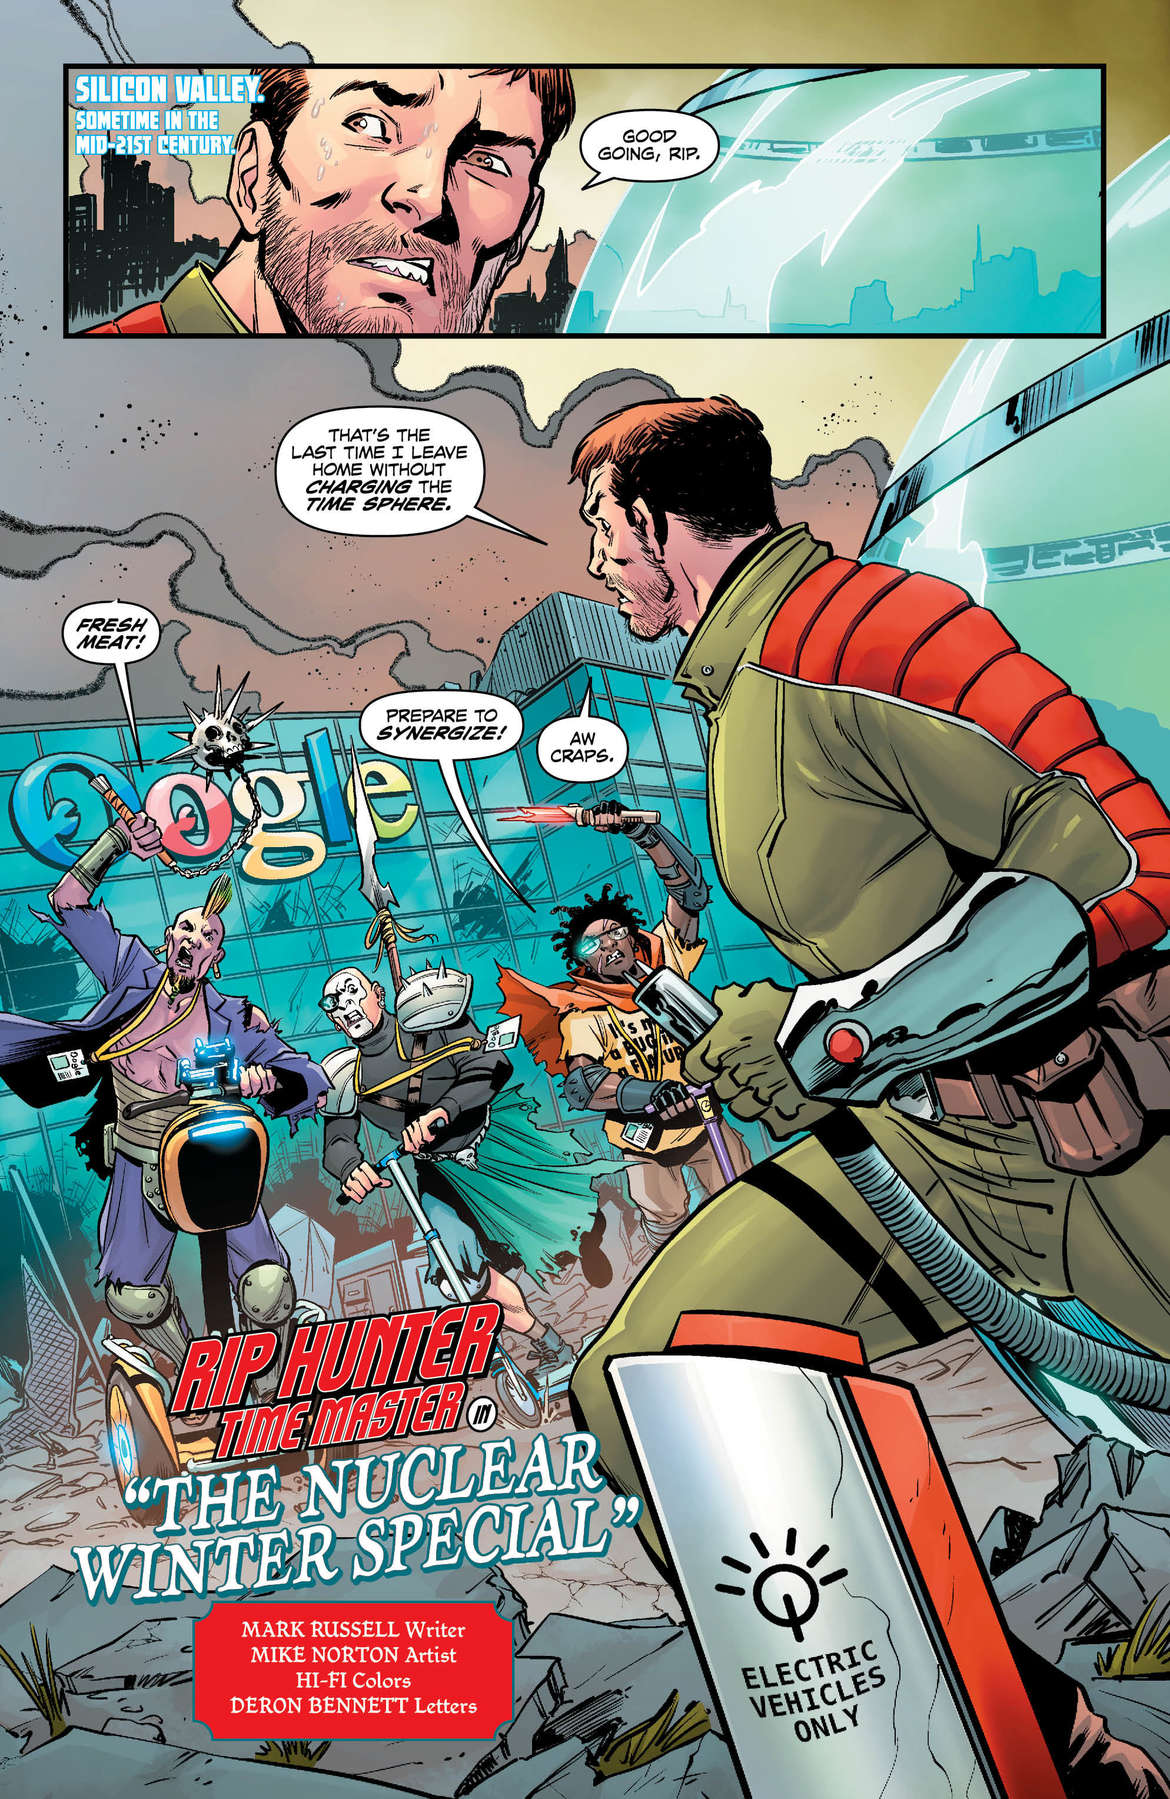 DC Nuclear Winter Special #1 Page 1